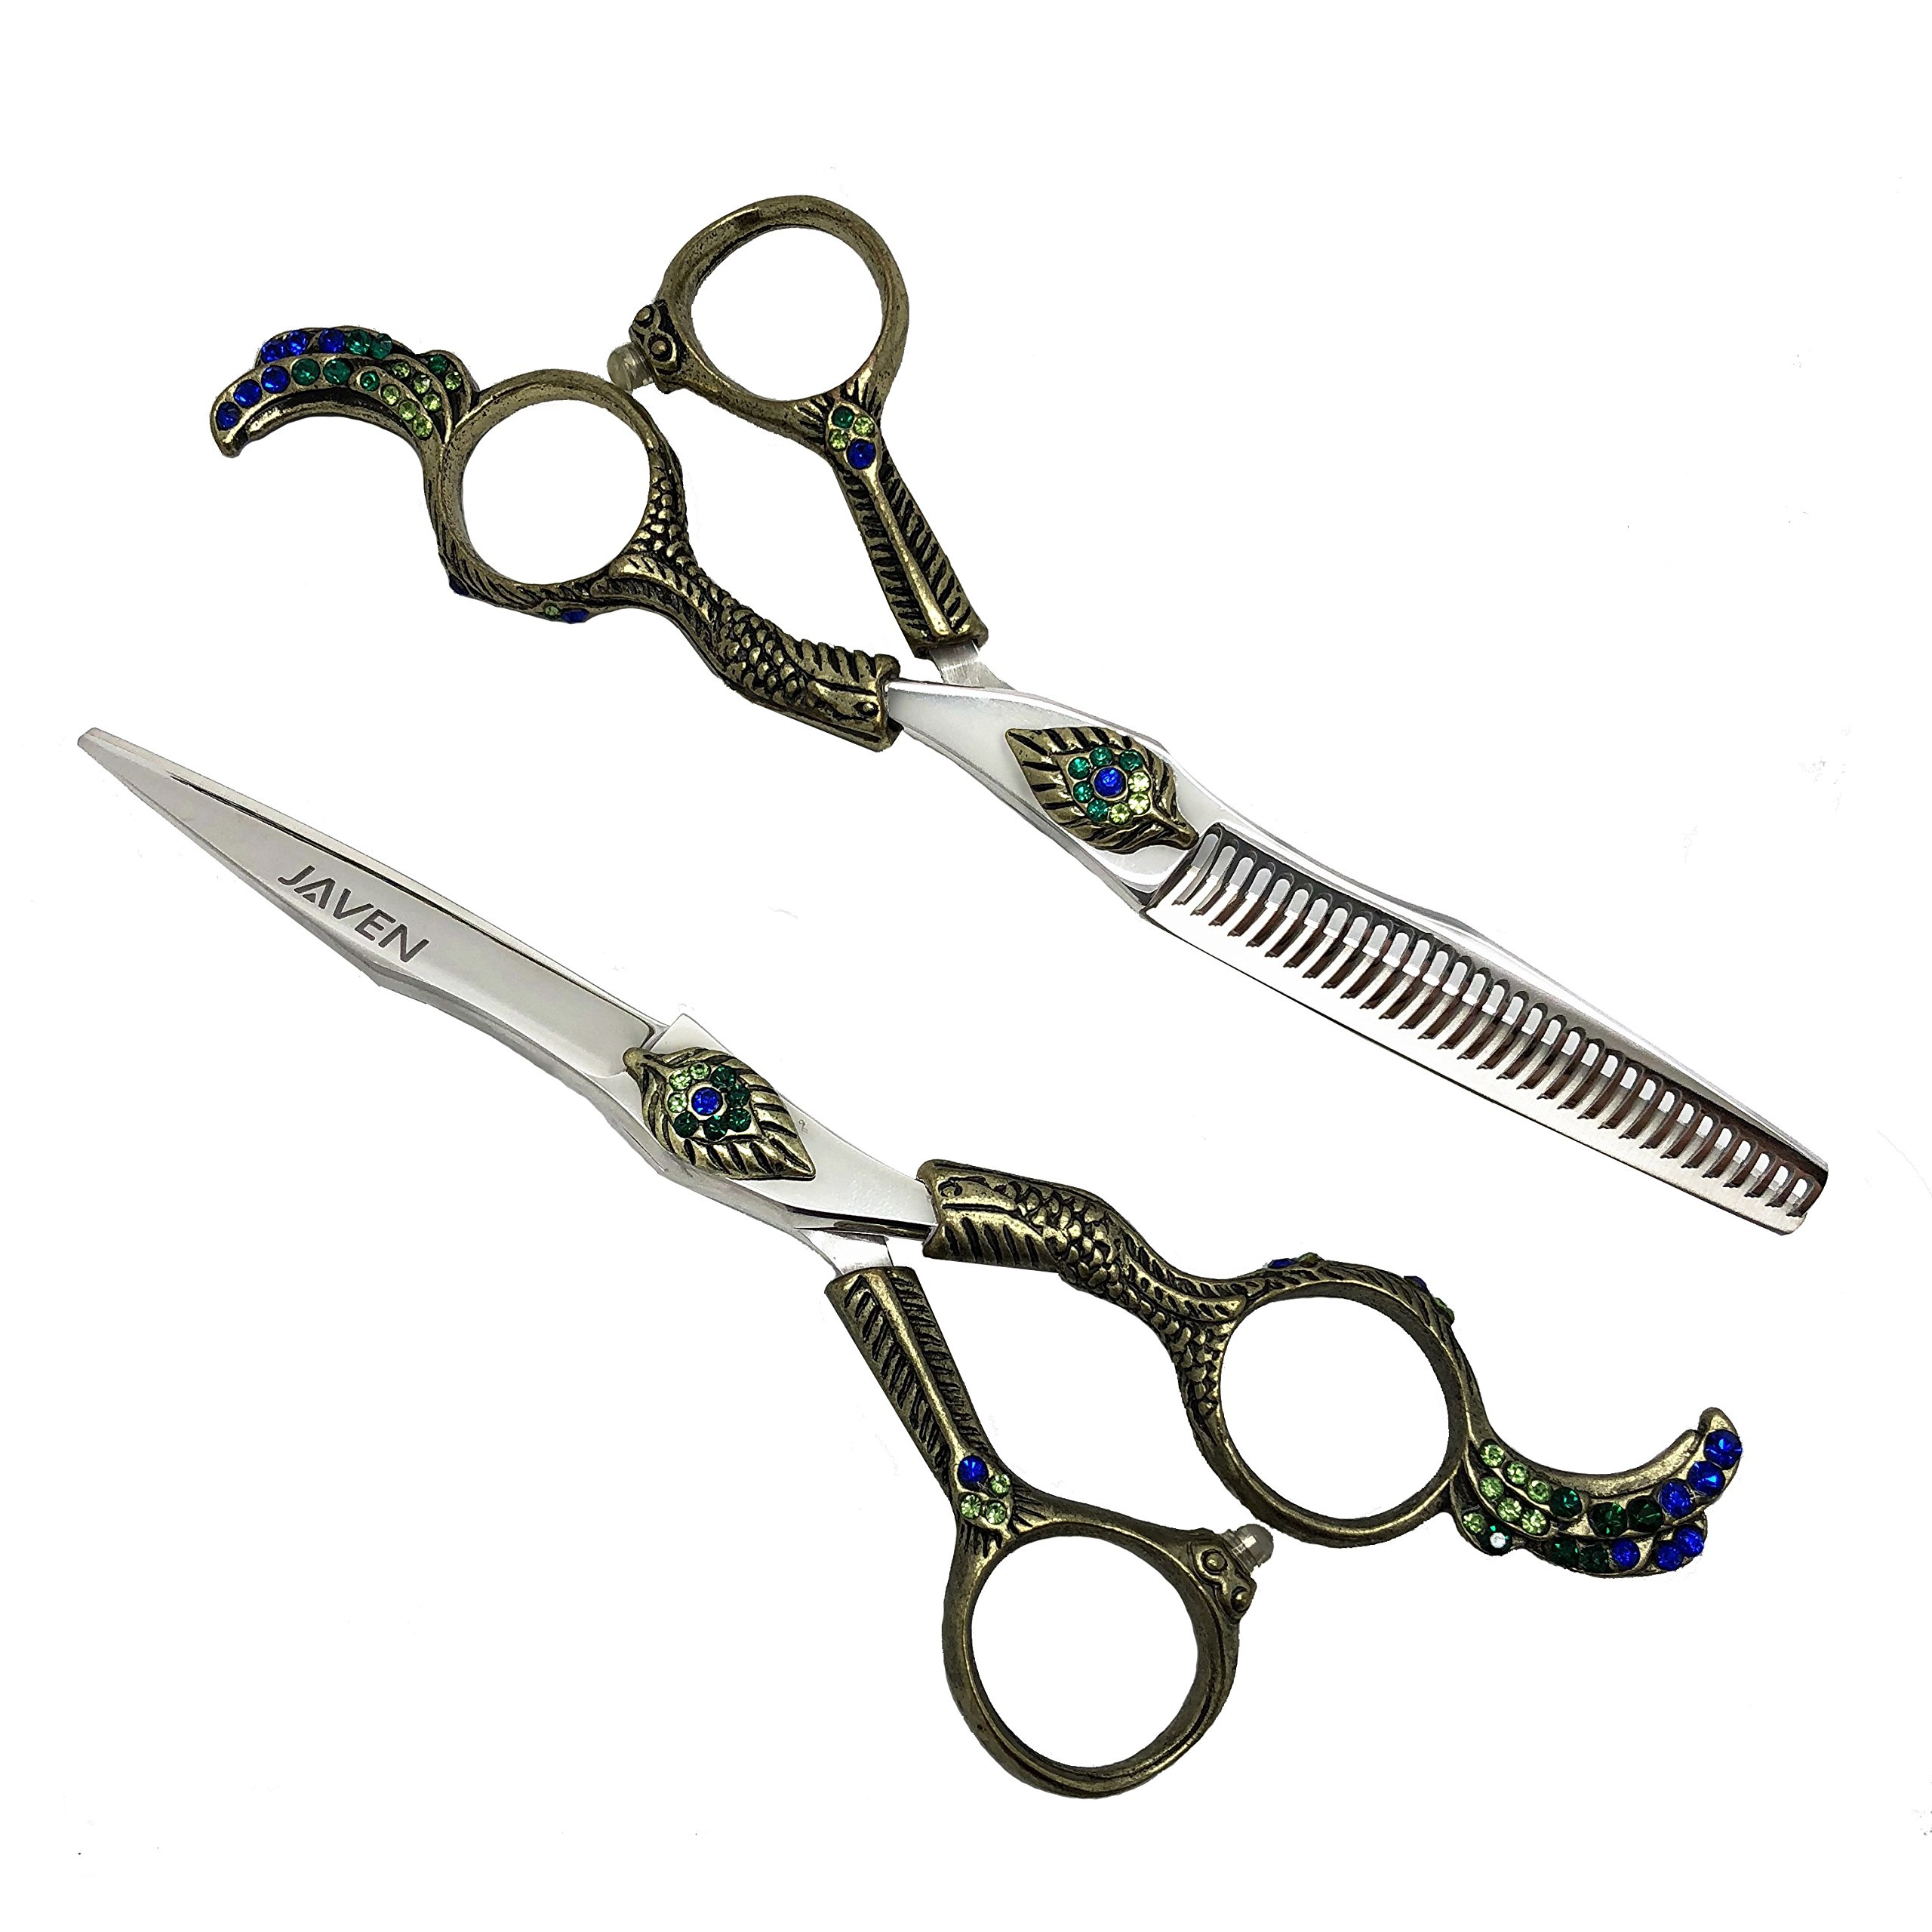 kongque JAVEN 6 Inch Hair Cutting Scissors Set Japan Hair Scissors Teflon Shears Hairdressing Scissors Barber Thinning Scissors Hairdresser Razor Haircut Right hand use (cutting+thinning/set)